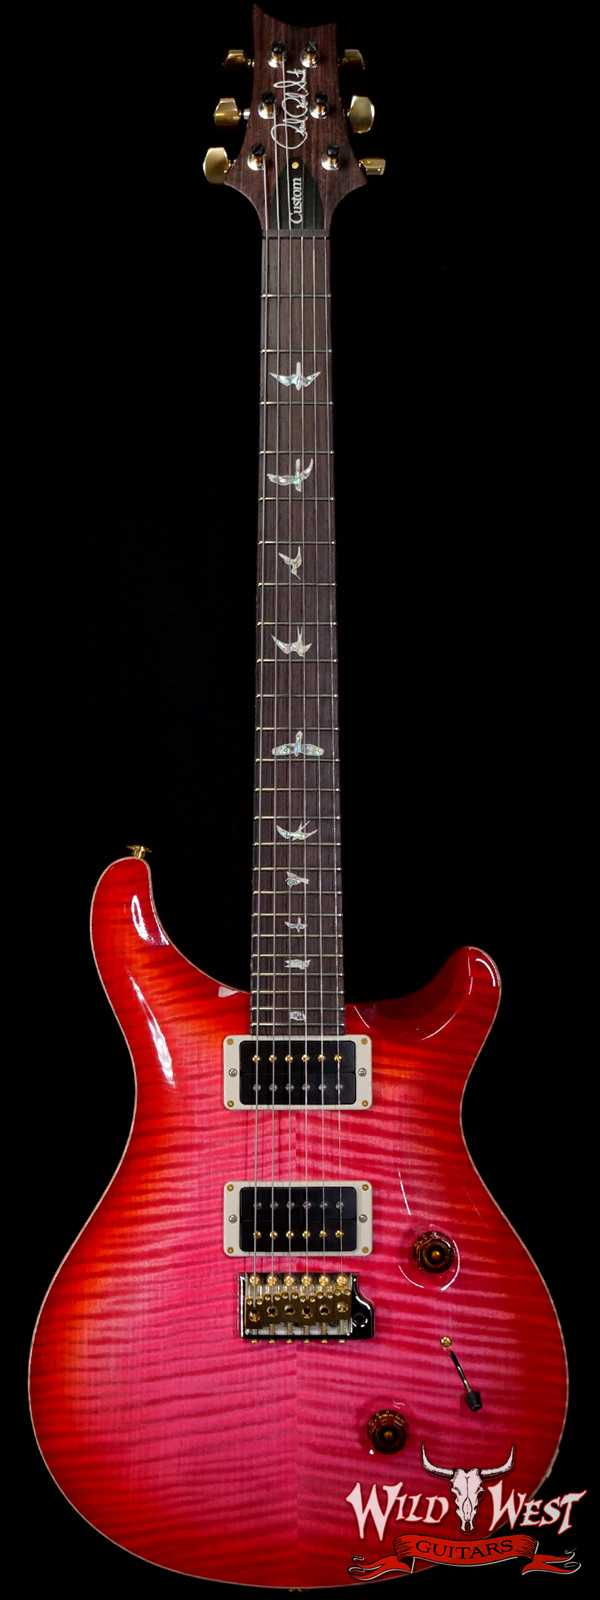 Paul Reed Smith PRS Core 10 Top Custom 24 Bonnie Pink Cherry Burst